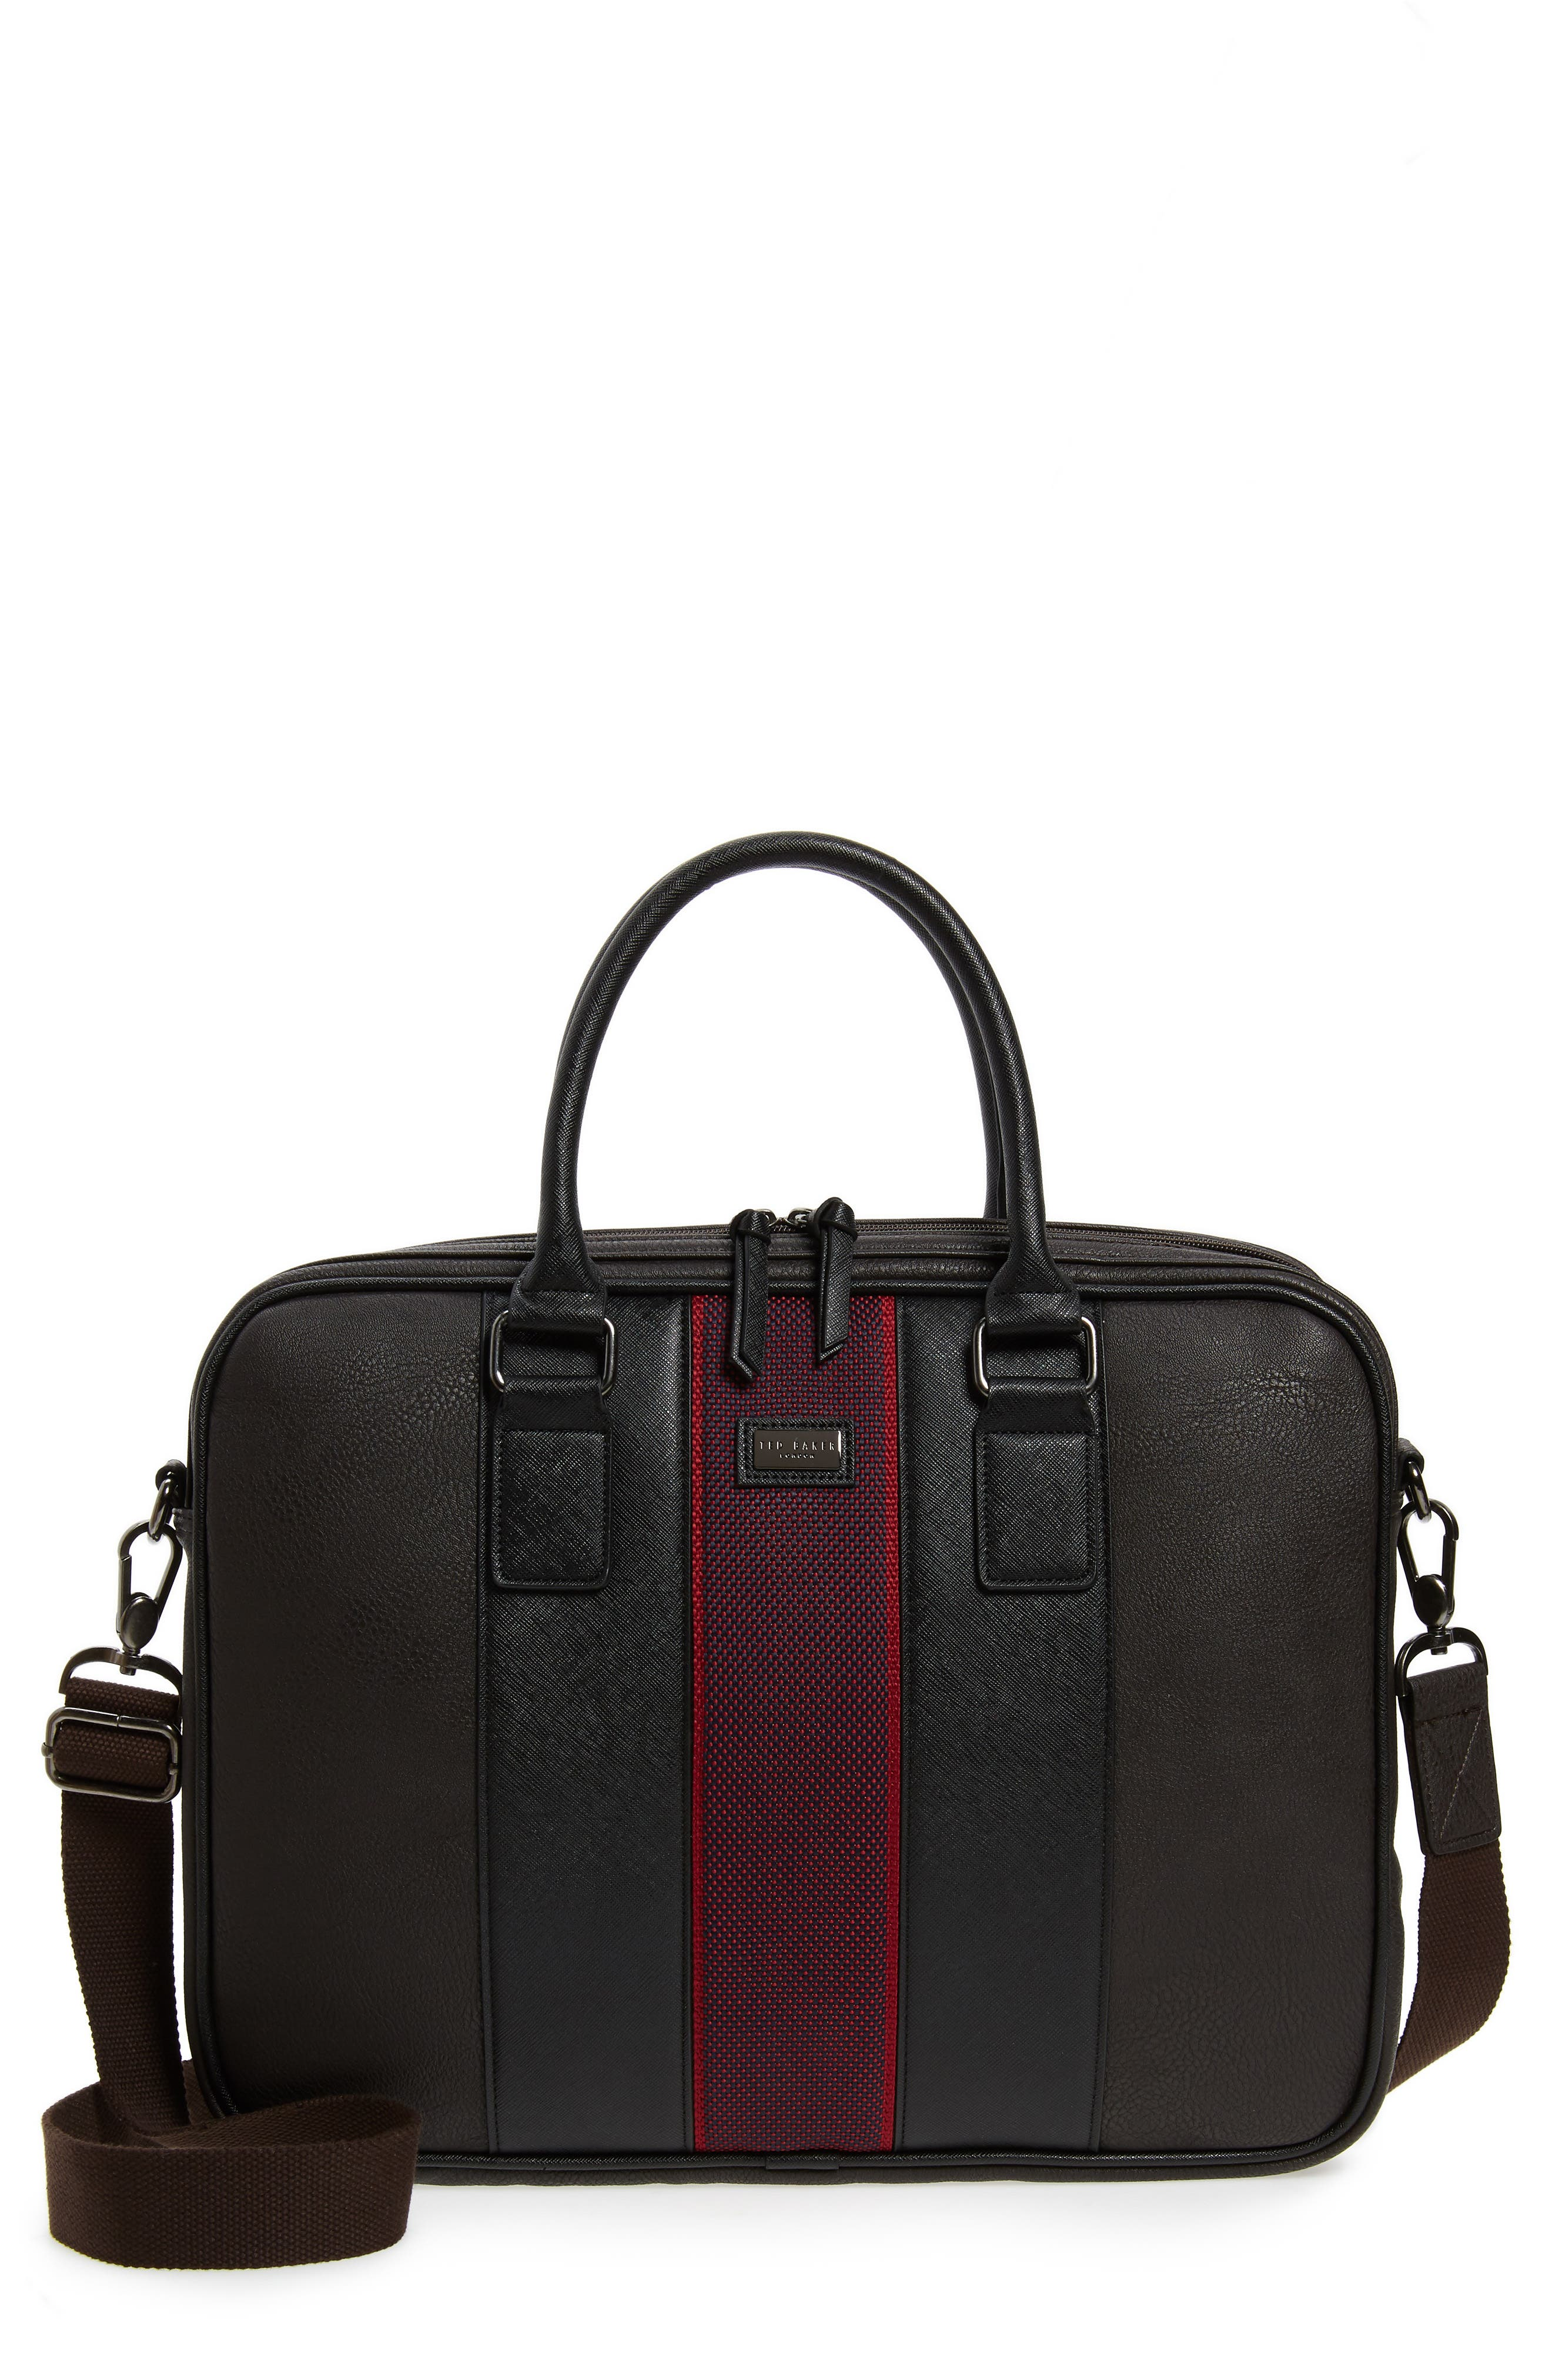 TED BAKER LONDON Merman Faux Leather Briefcase, Main, color, 211